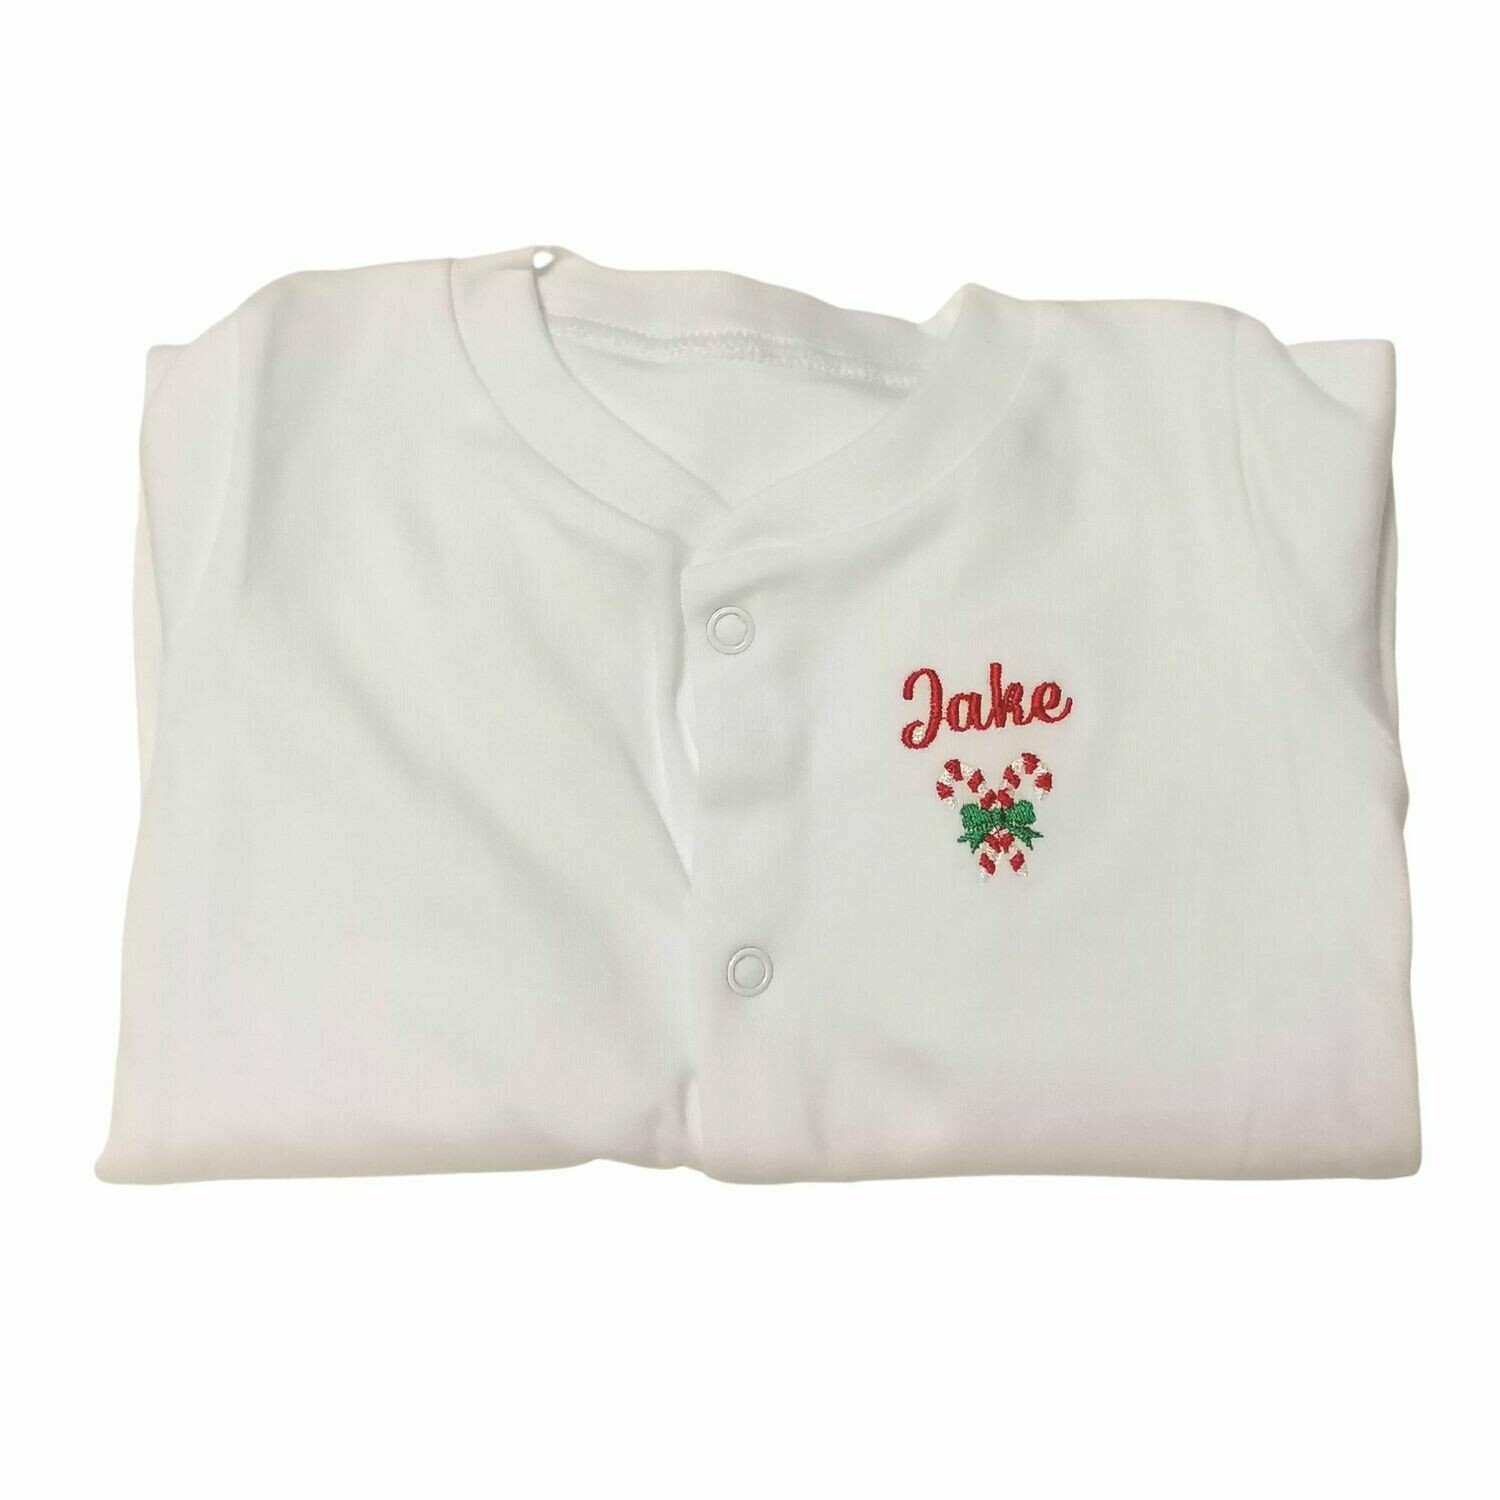 Personalised Baby Christmas Sleepsuit with Candy Canes